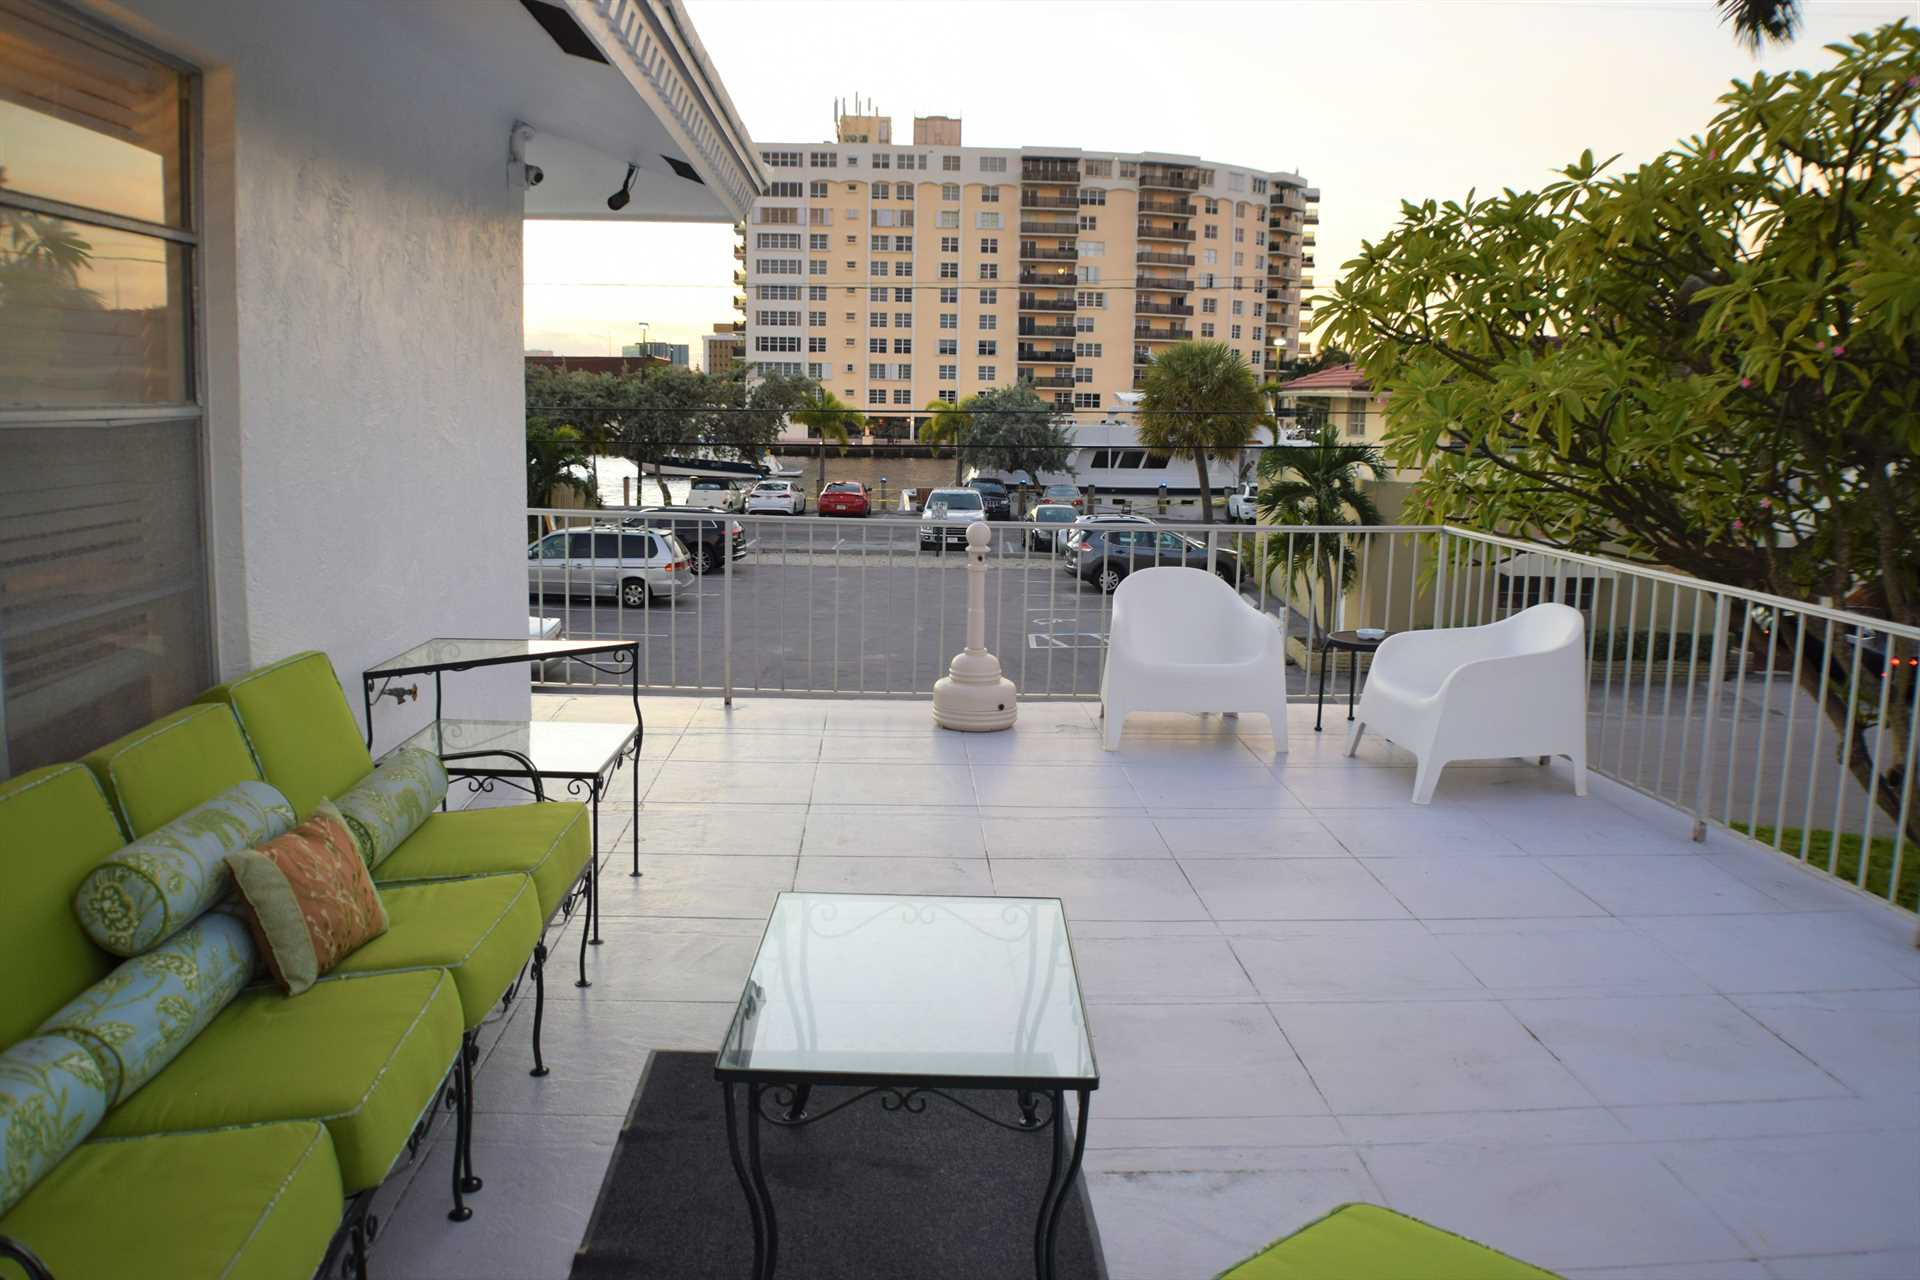 Relax on the sun deck and enjoy your favorite beverage.